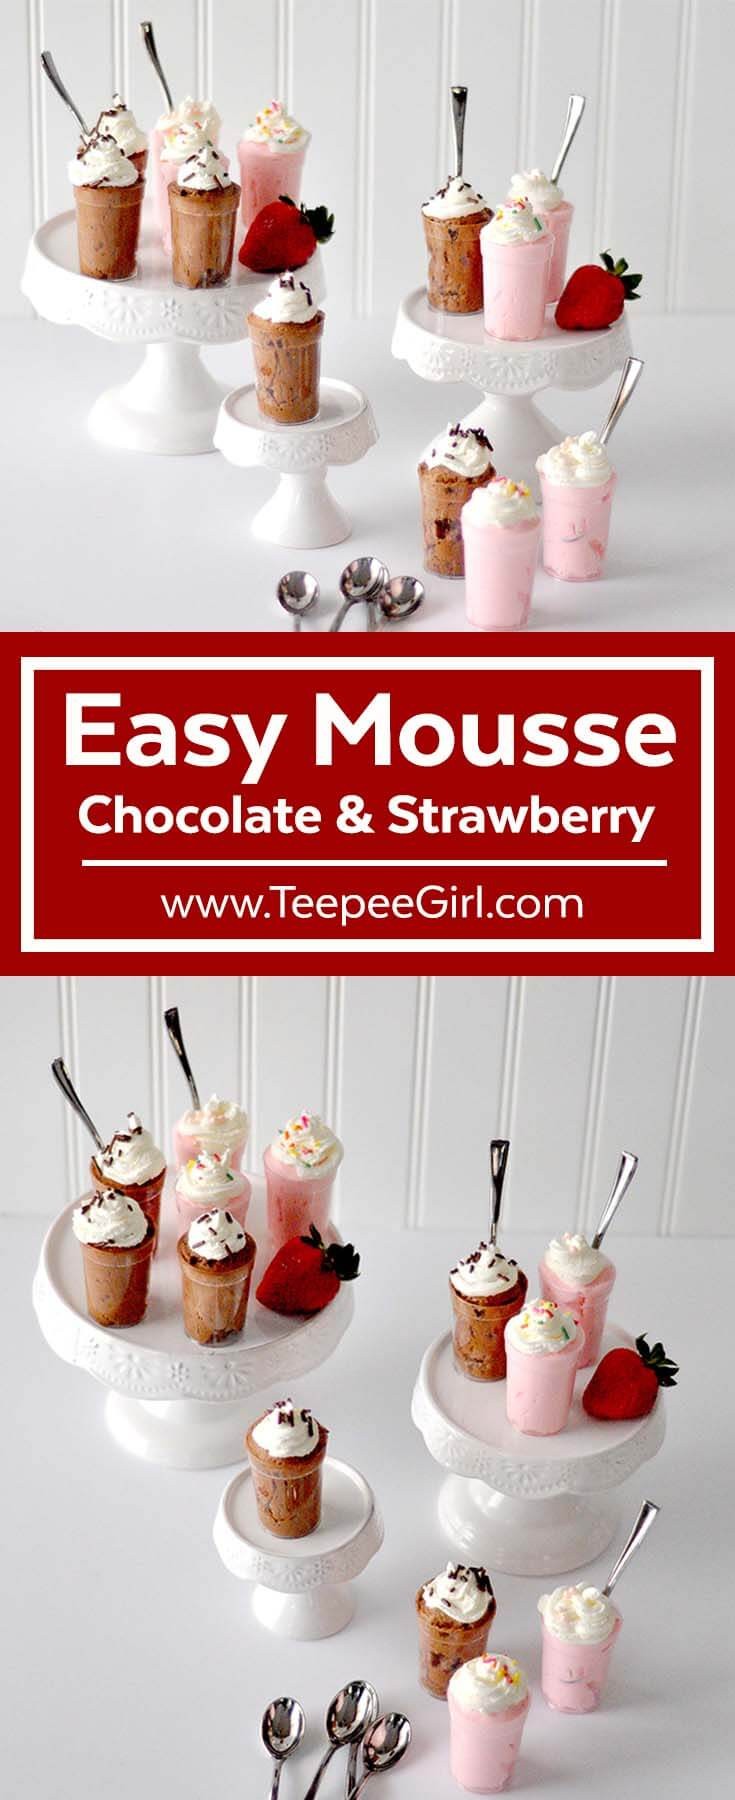 Chocolate and strawberry mousse couldn't be easier! These simple but totally delicious recipes will make you a rock star with friends and family! Click here or go to www.TeepeeGirl.com.